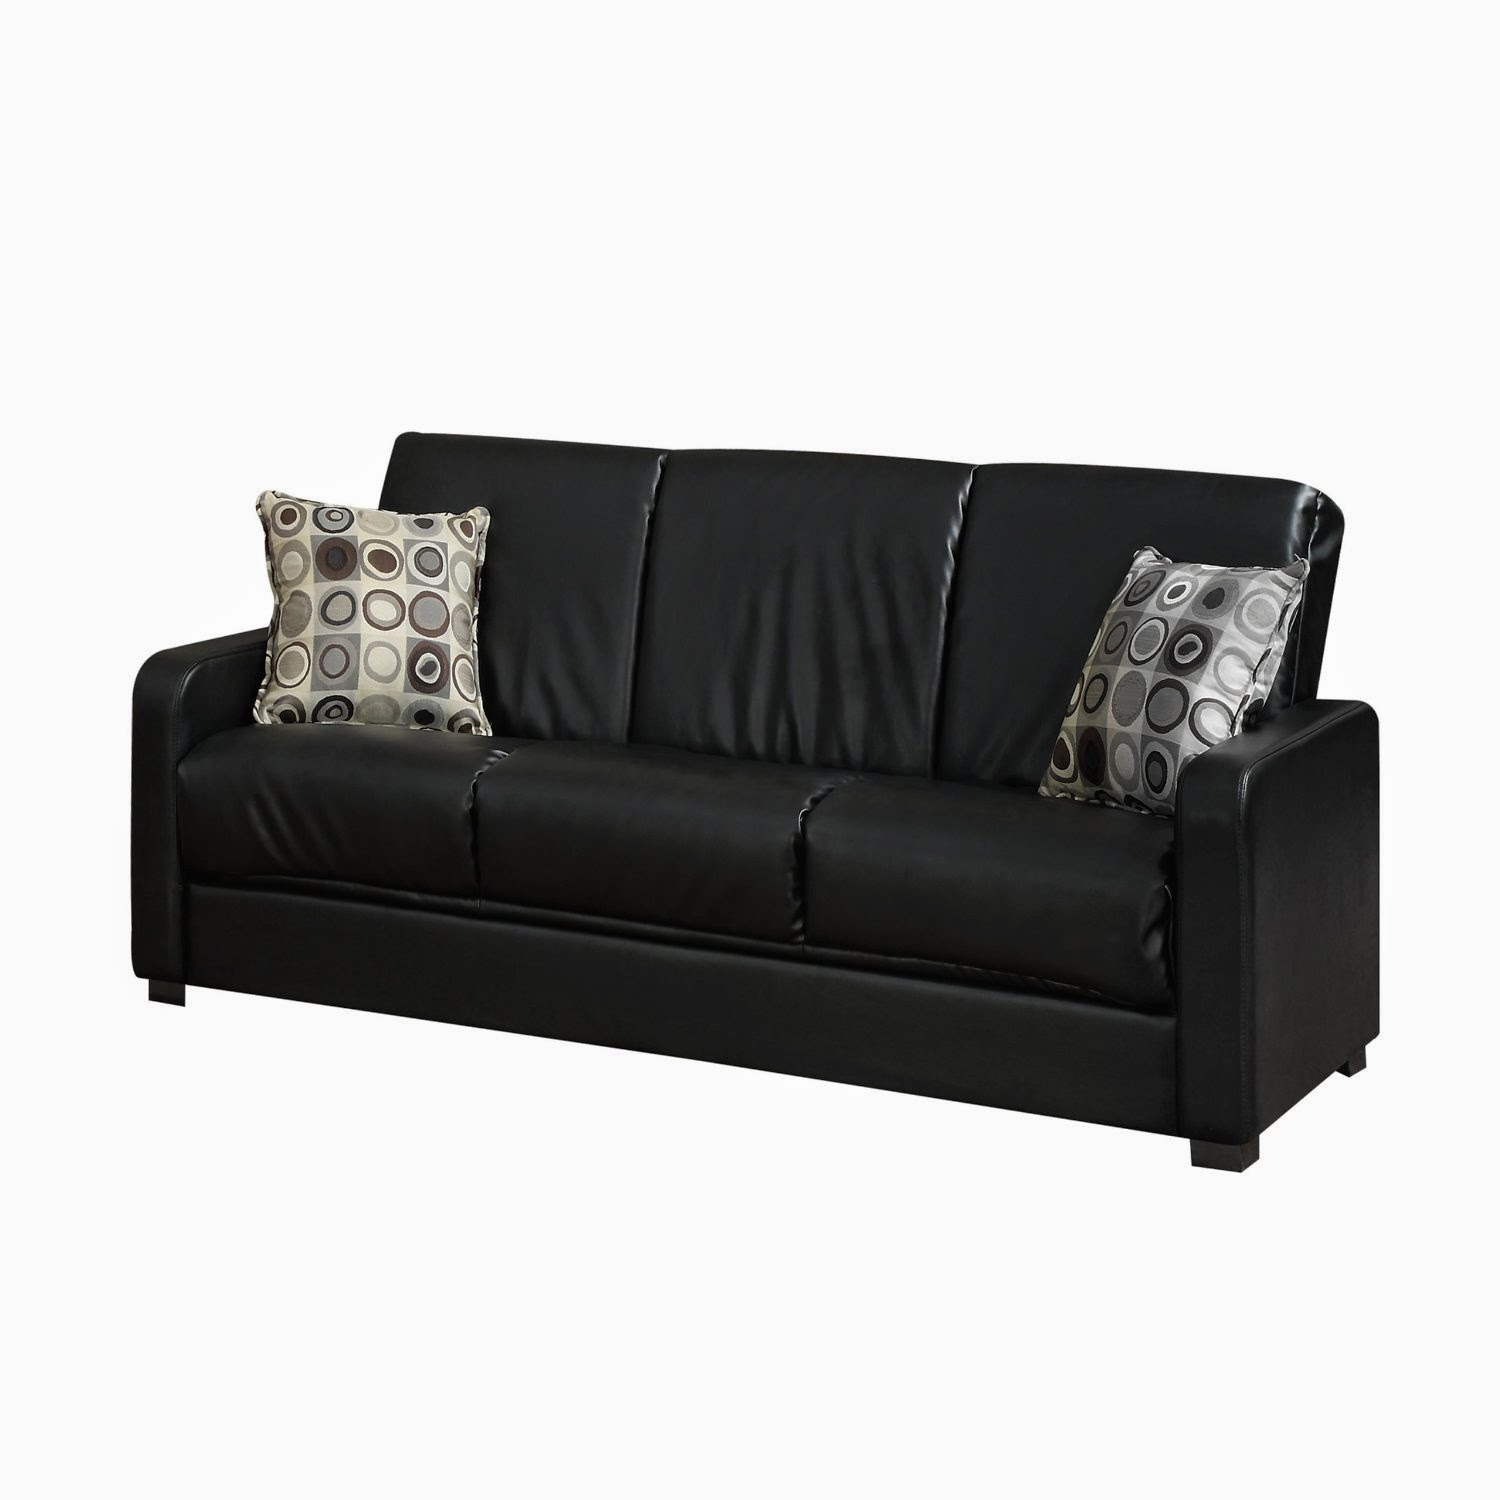 leather sofa bed pull out plush beds melbourne couch